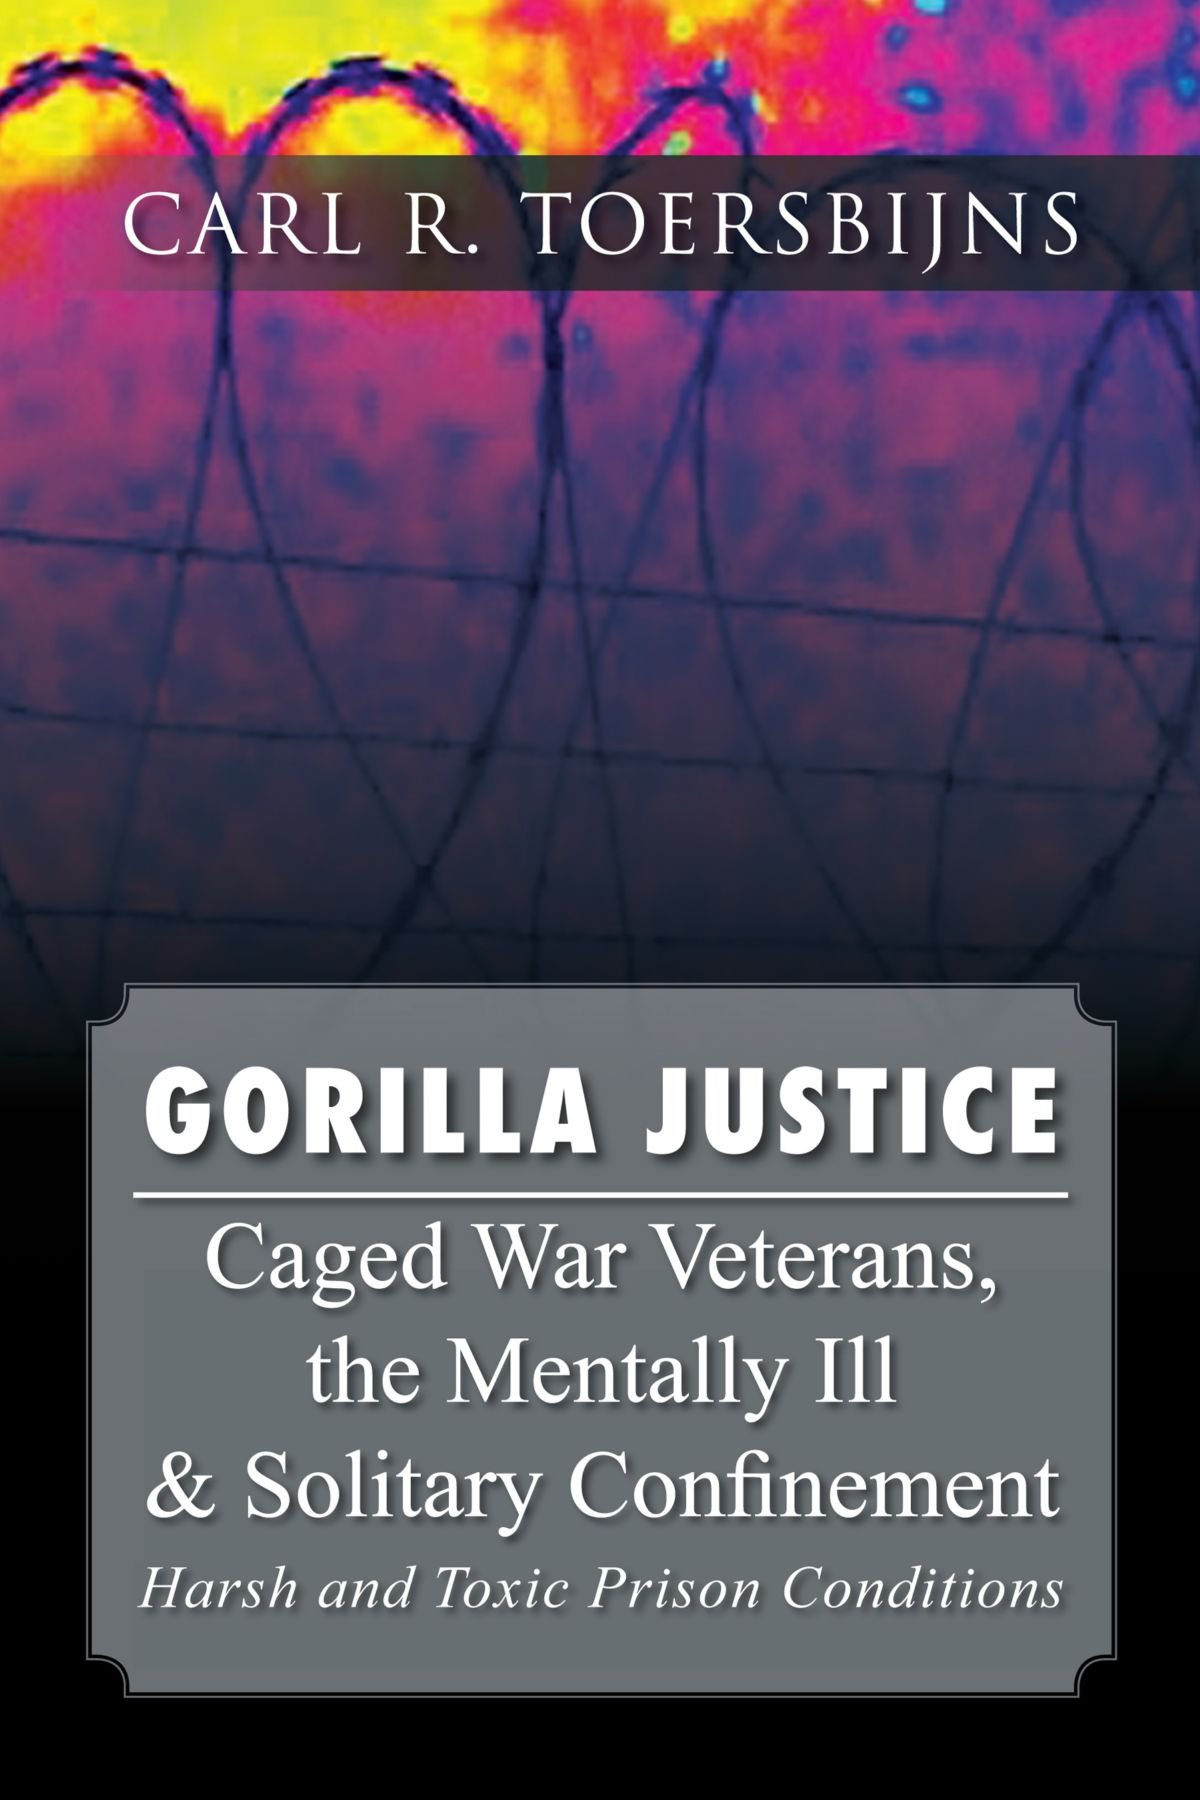 Gorilla Justice: Caged War Veterans, the Mentally Ill & Solitary Confinement PDF